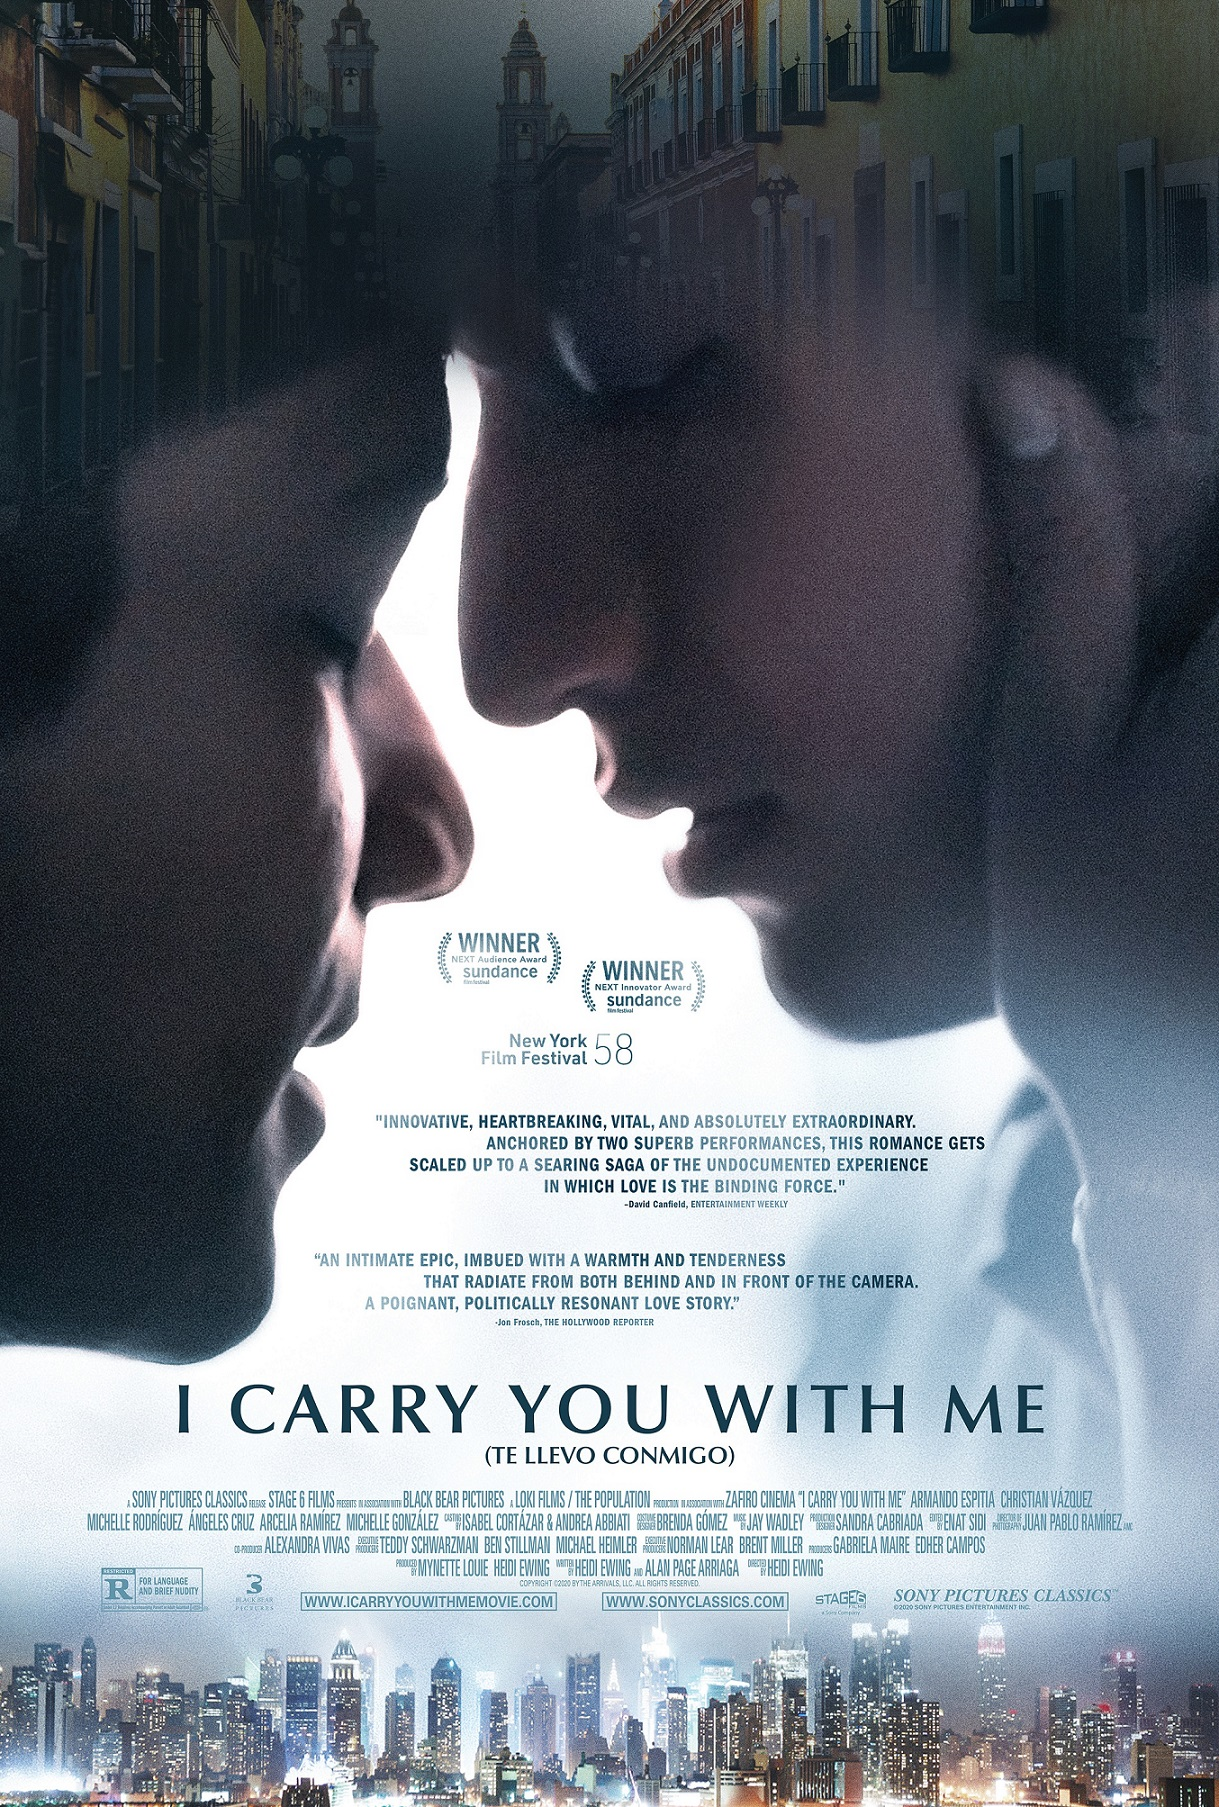 MGFF21: I Carry You with Me movie poster